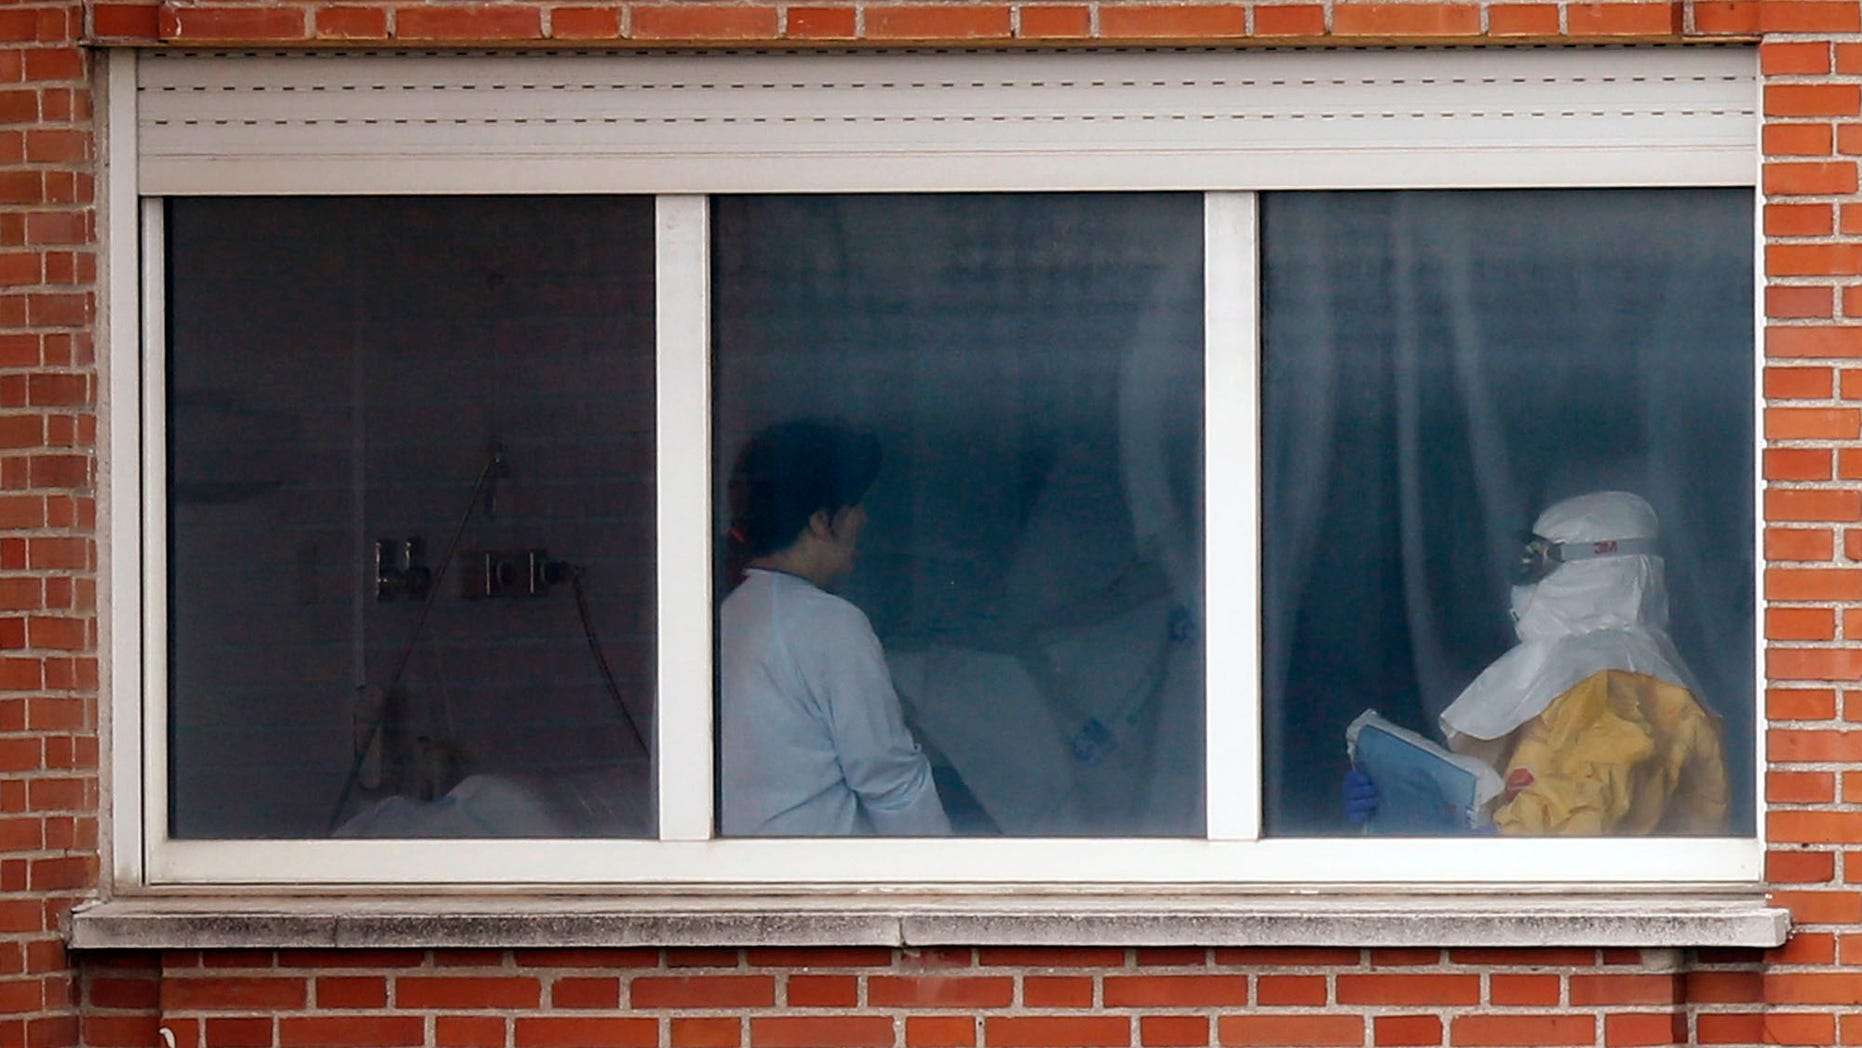 Oct. 9, 2014: A medical practitioner wearing protective clothing, right, stands next to an isolated patient on the sixth floor of the the Carlos III hospital in Madrid, Spain.